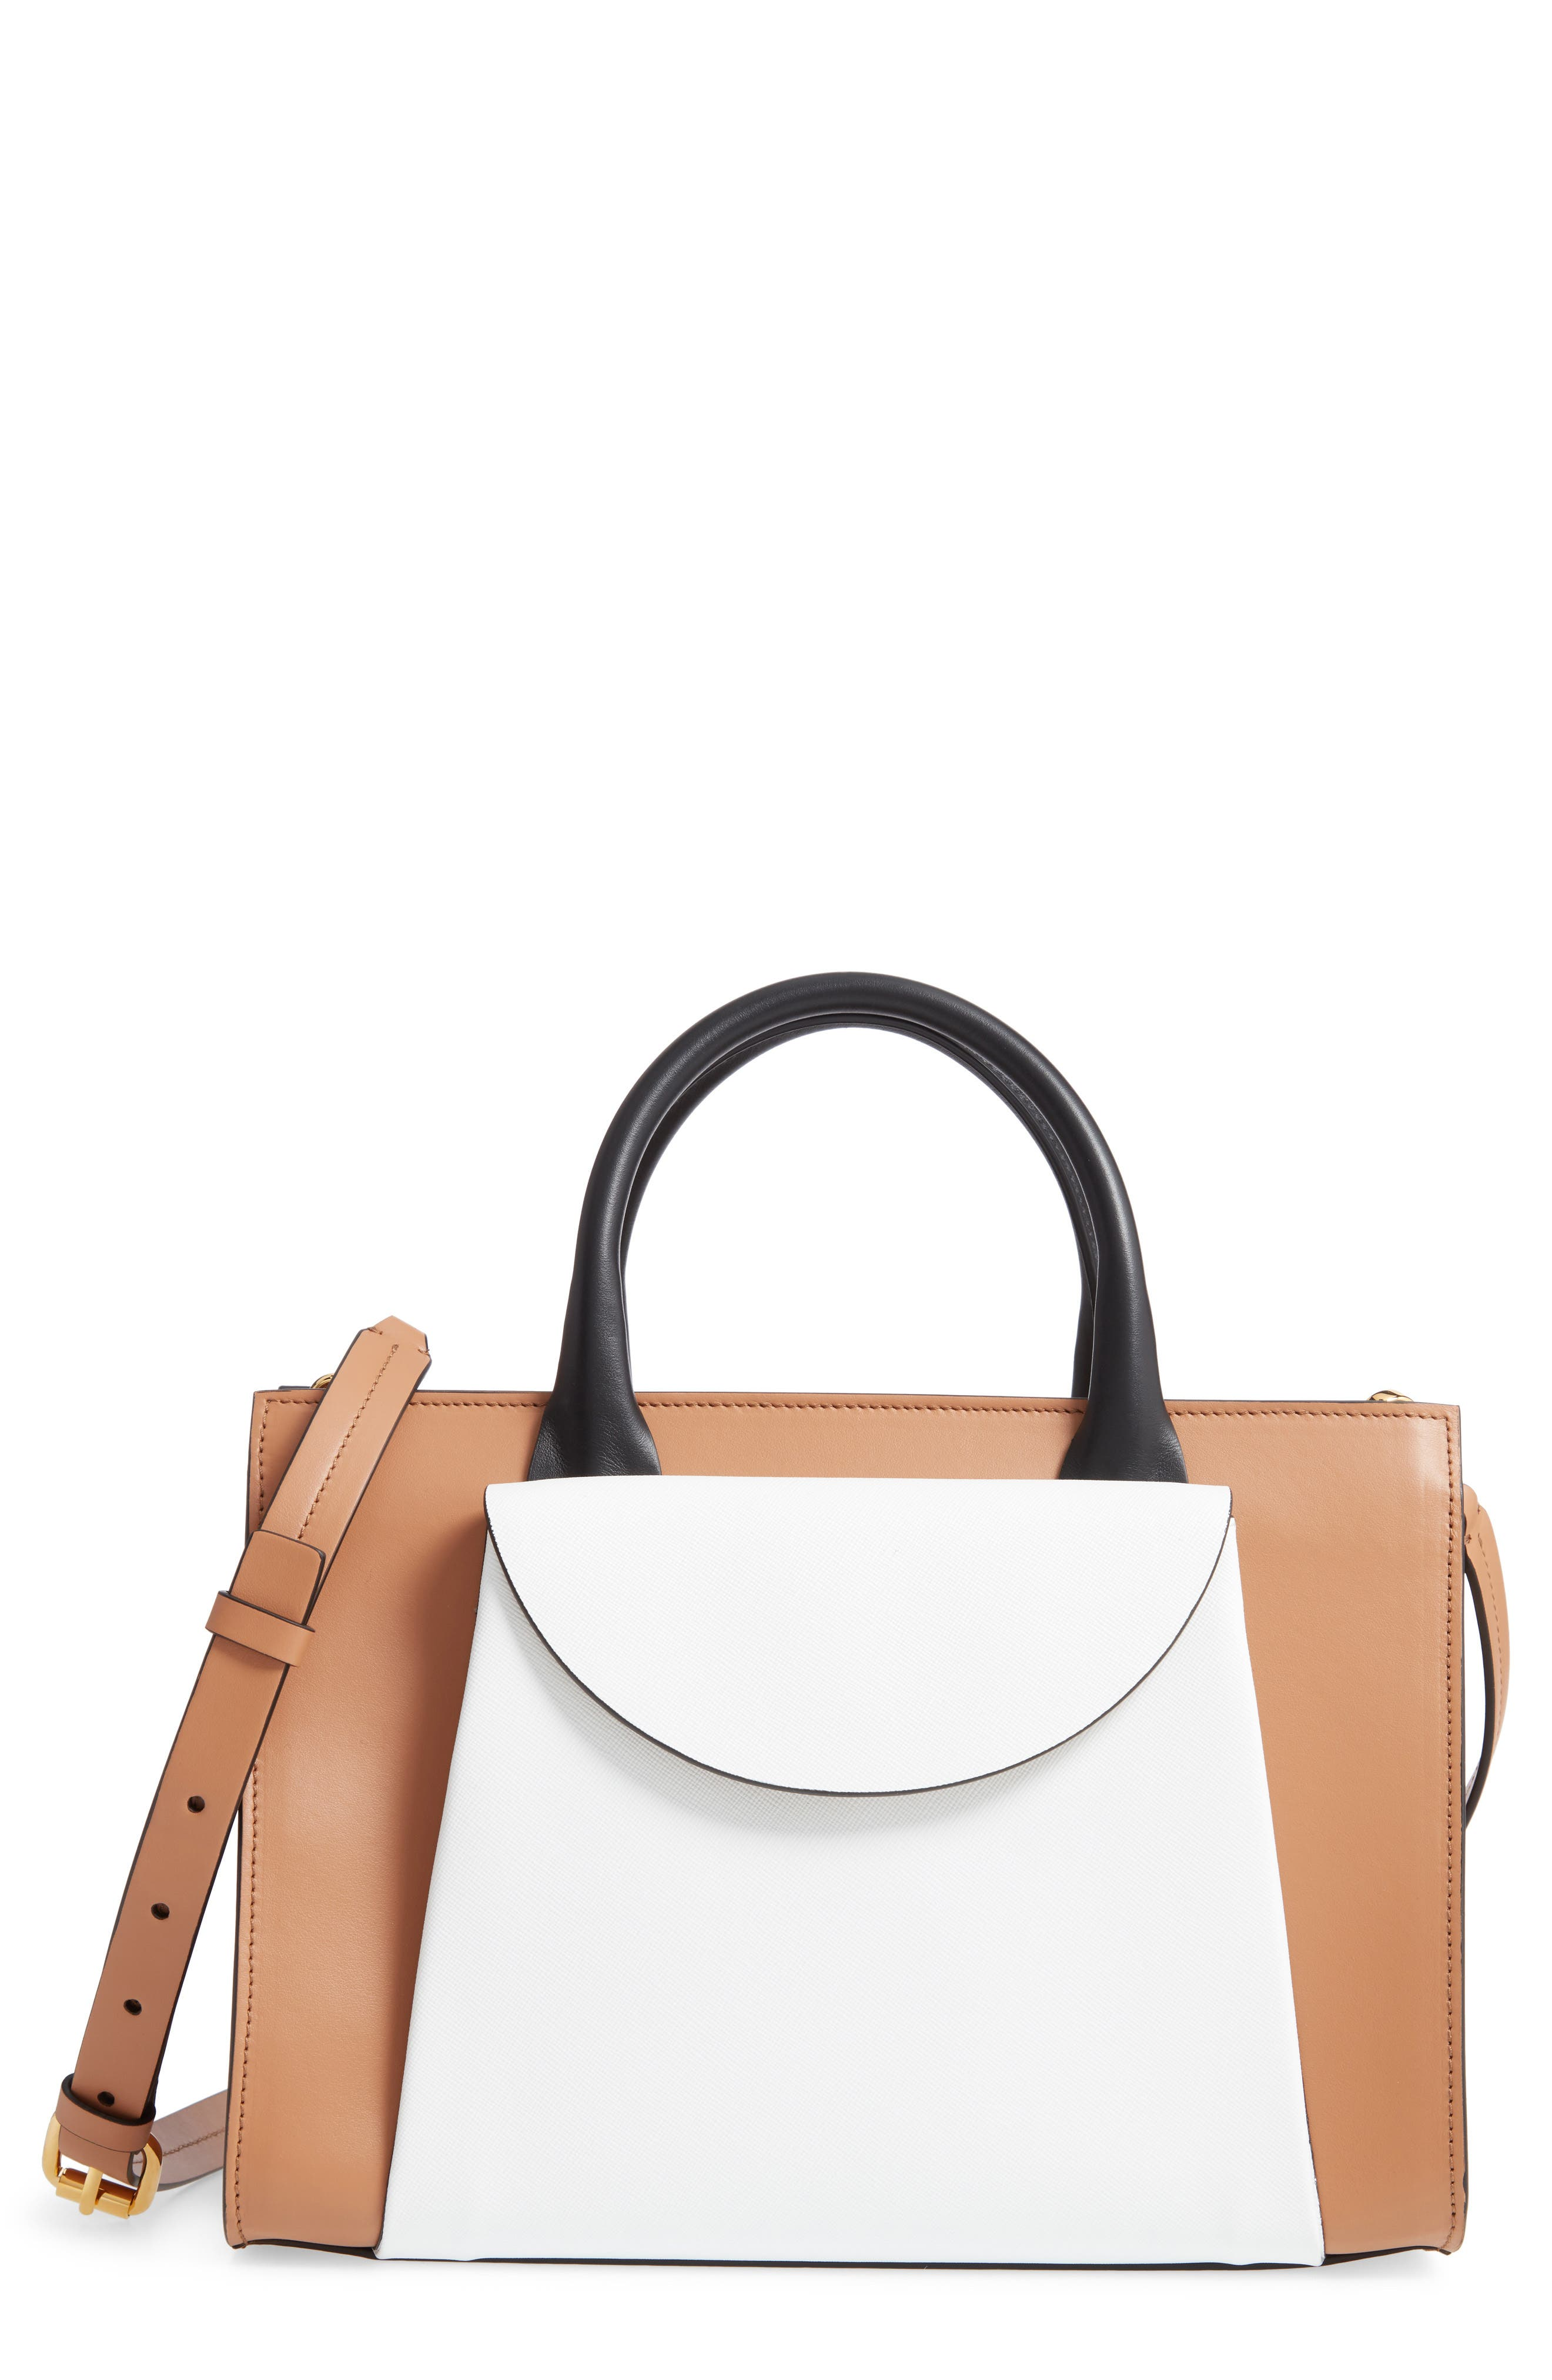 MARNI, Medium Law Colorblock Top Handle Satchel, Main thumbnail 1, color, POMPEII/ LIMESTONE/ BLACK